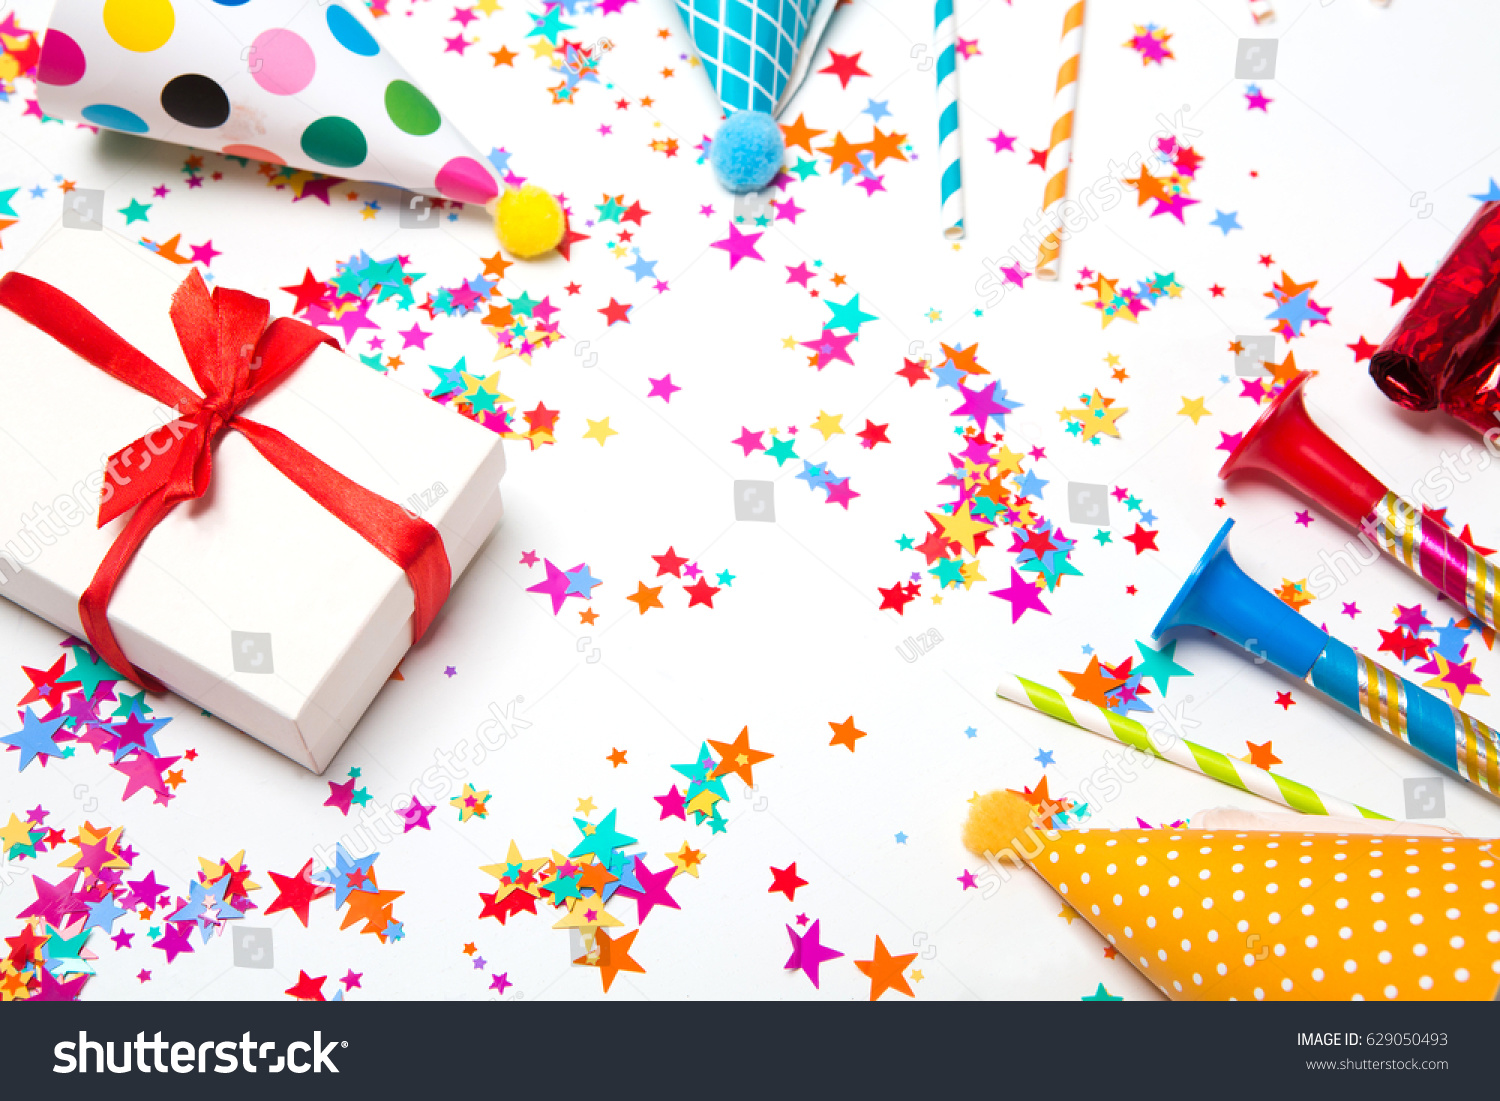 Children Party Background Birthday Colorful Frame With Cap And Whistle On A